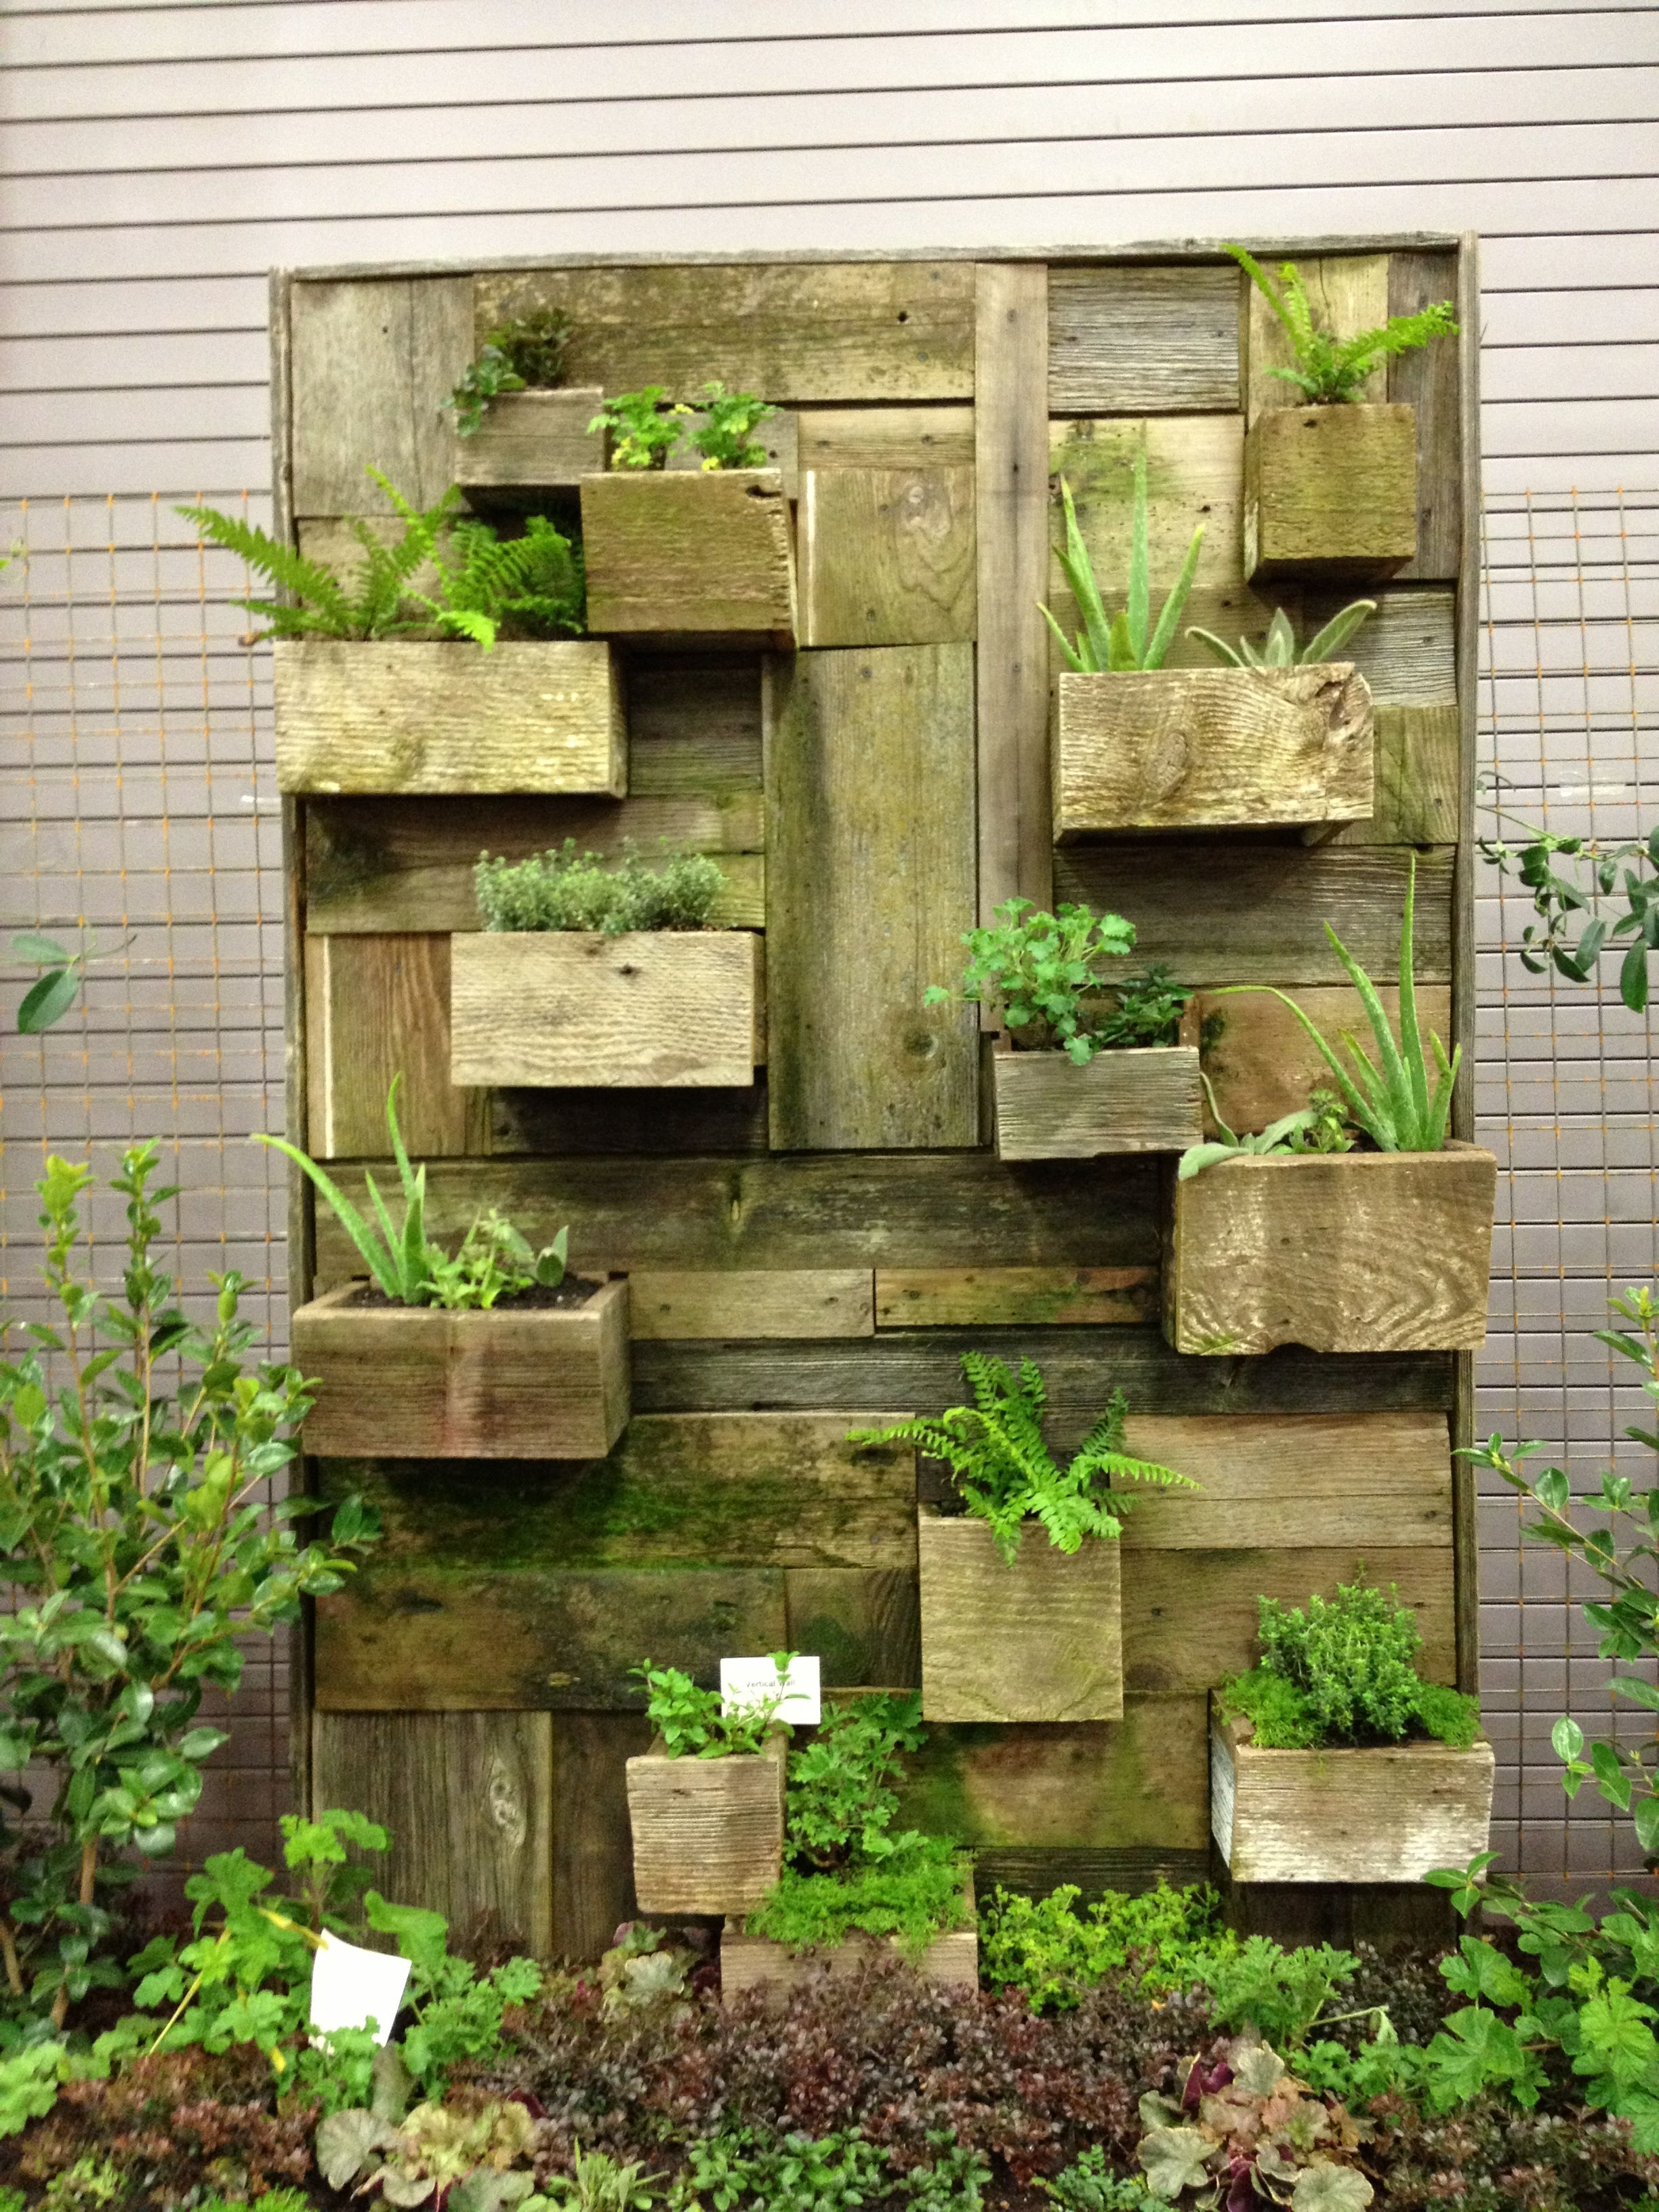 Reclaimed Wood Pallet Vertical Garden Wall Inspiration